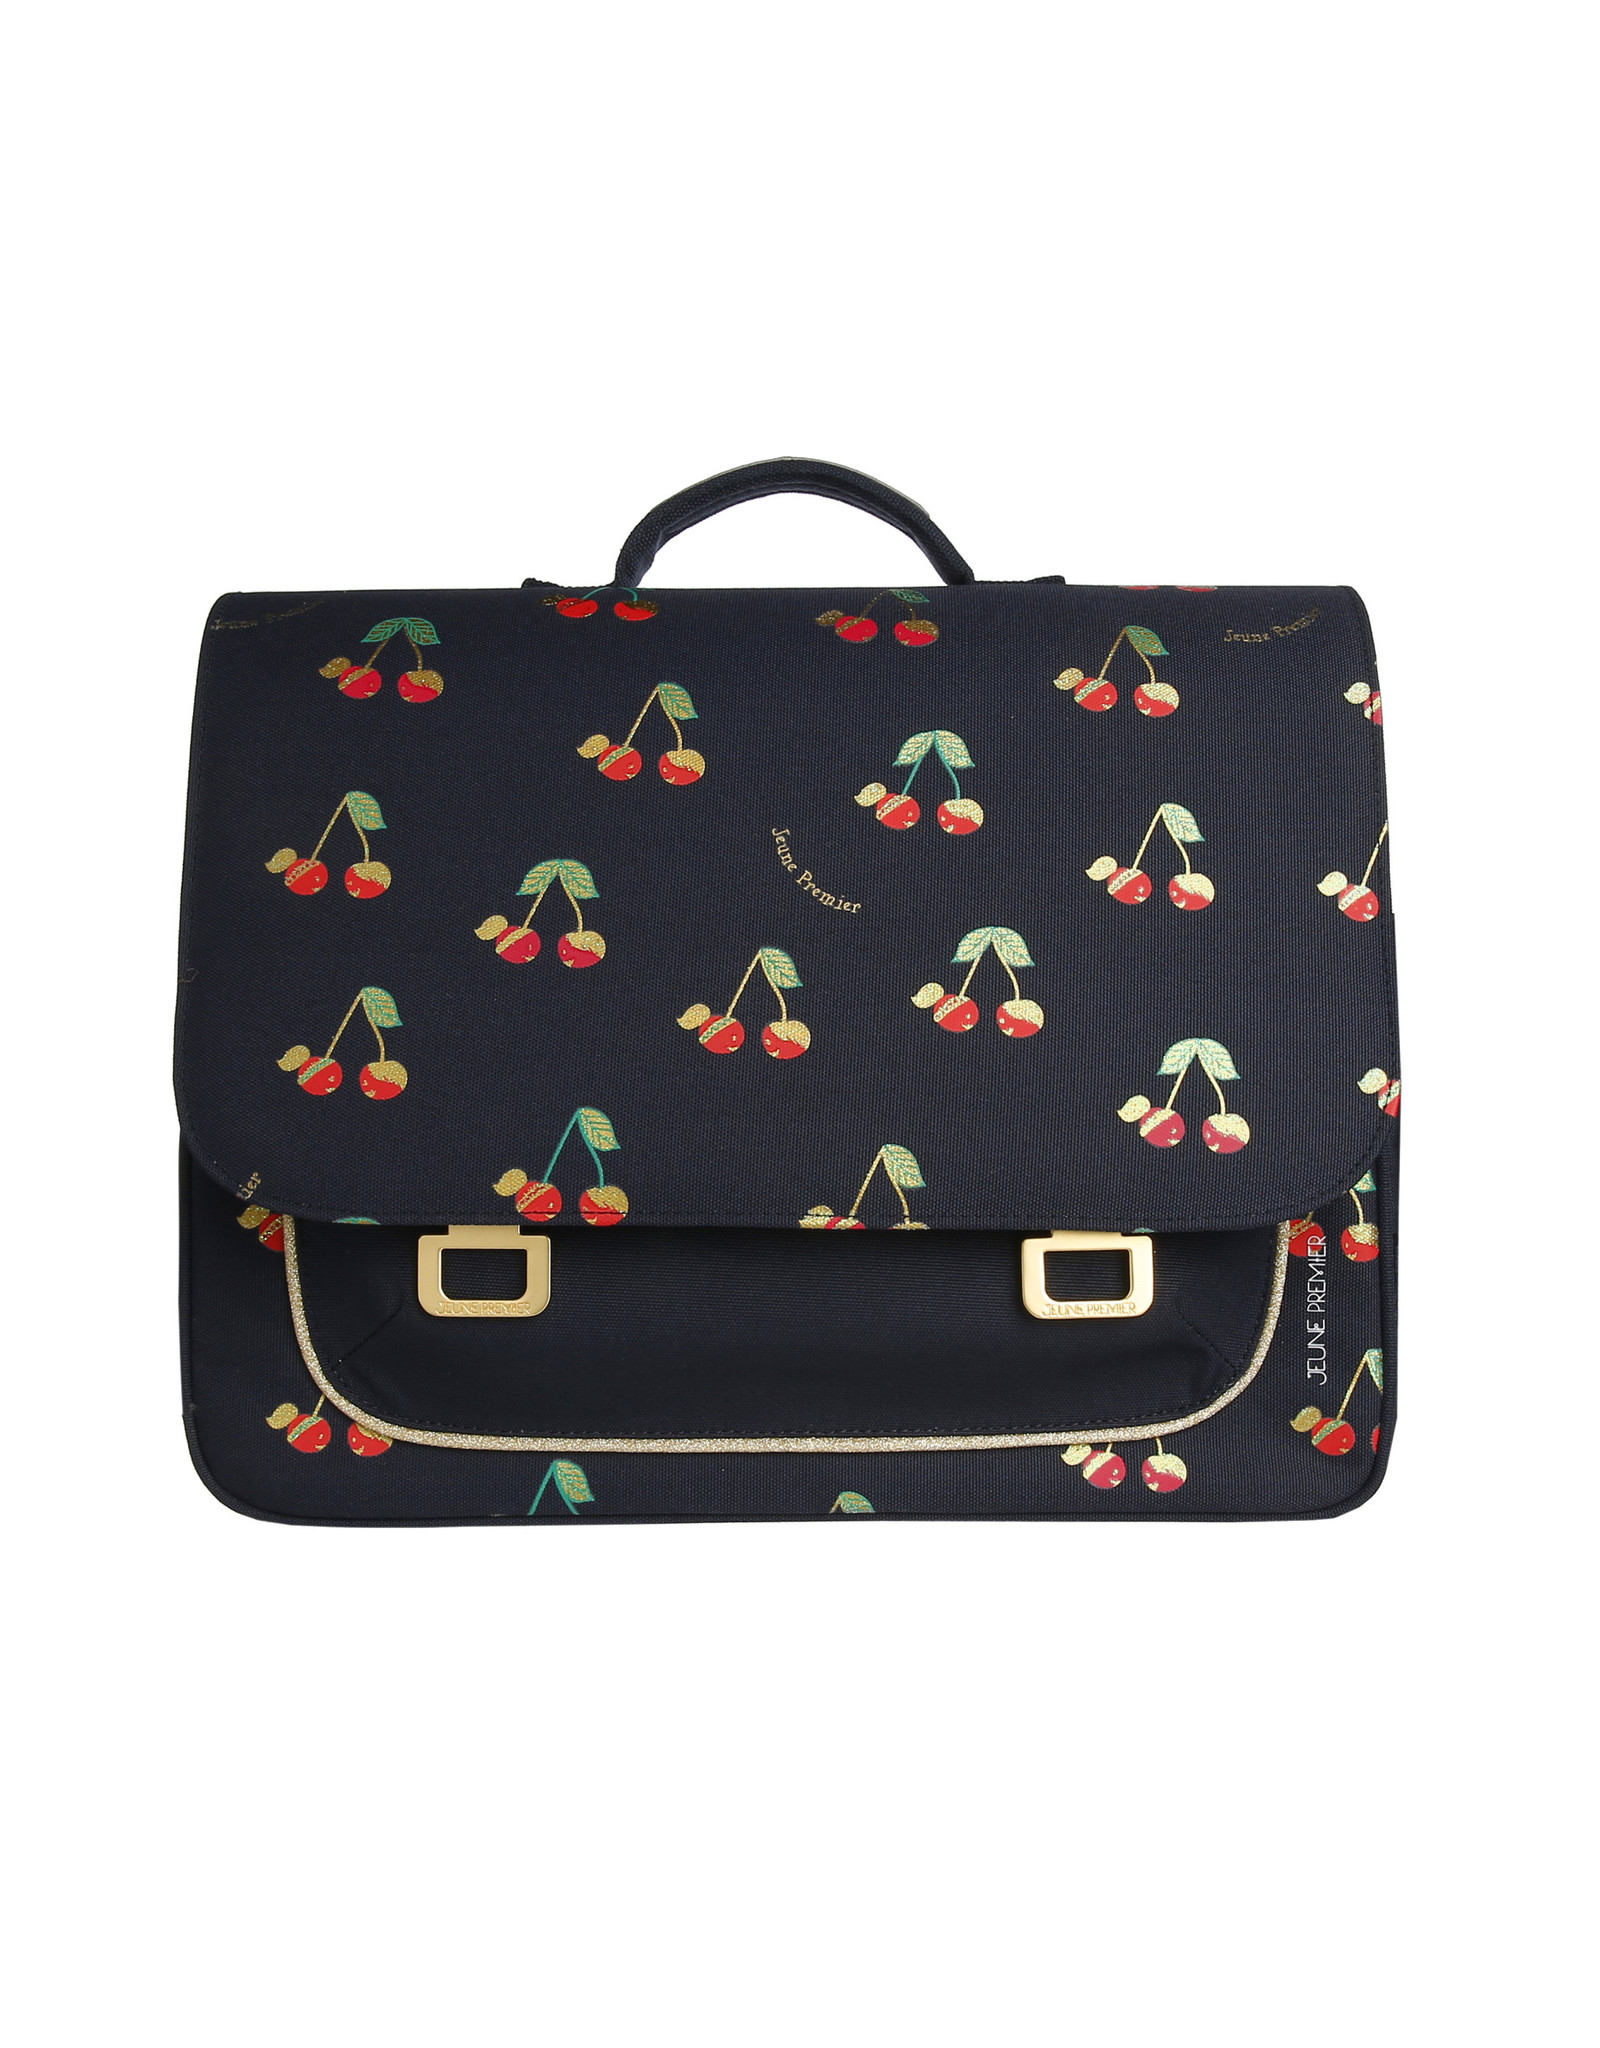 JEUNE PREMIER JEUNE PREMIER IT BAG MIDI LOVE CHERRIES